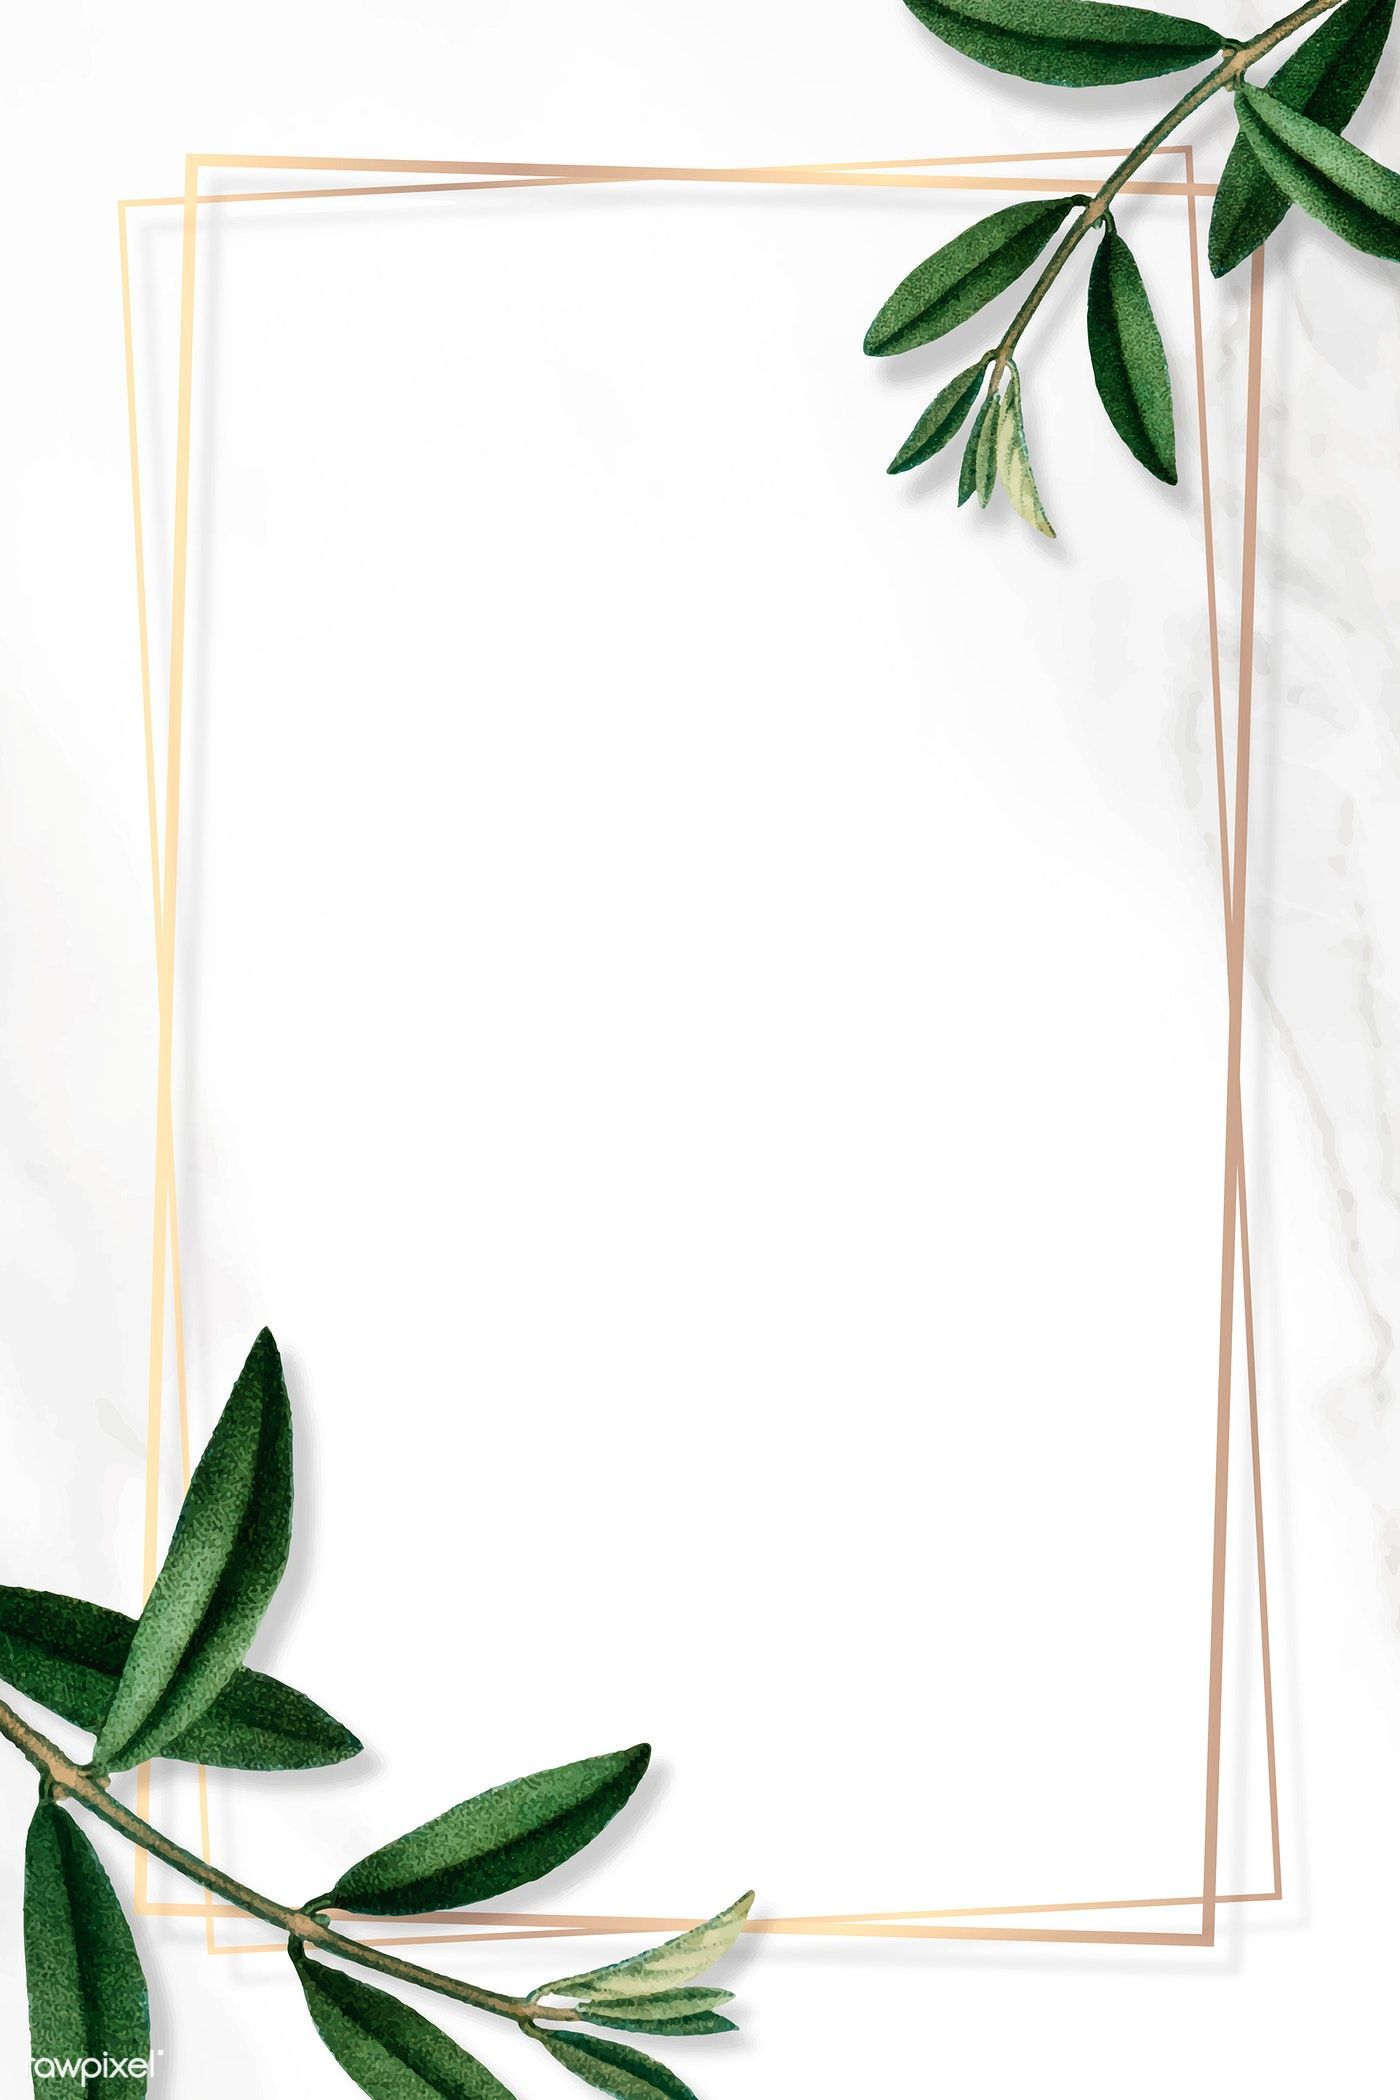 Gold frame with green leaves on white background vector | premium image by rawpixel.com / sasi #vector #vectorart